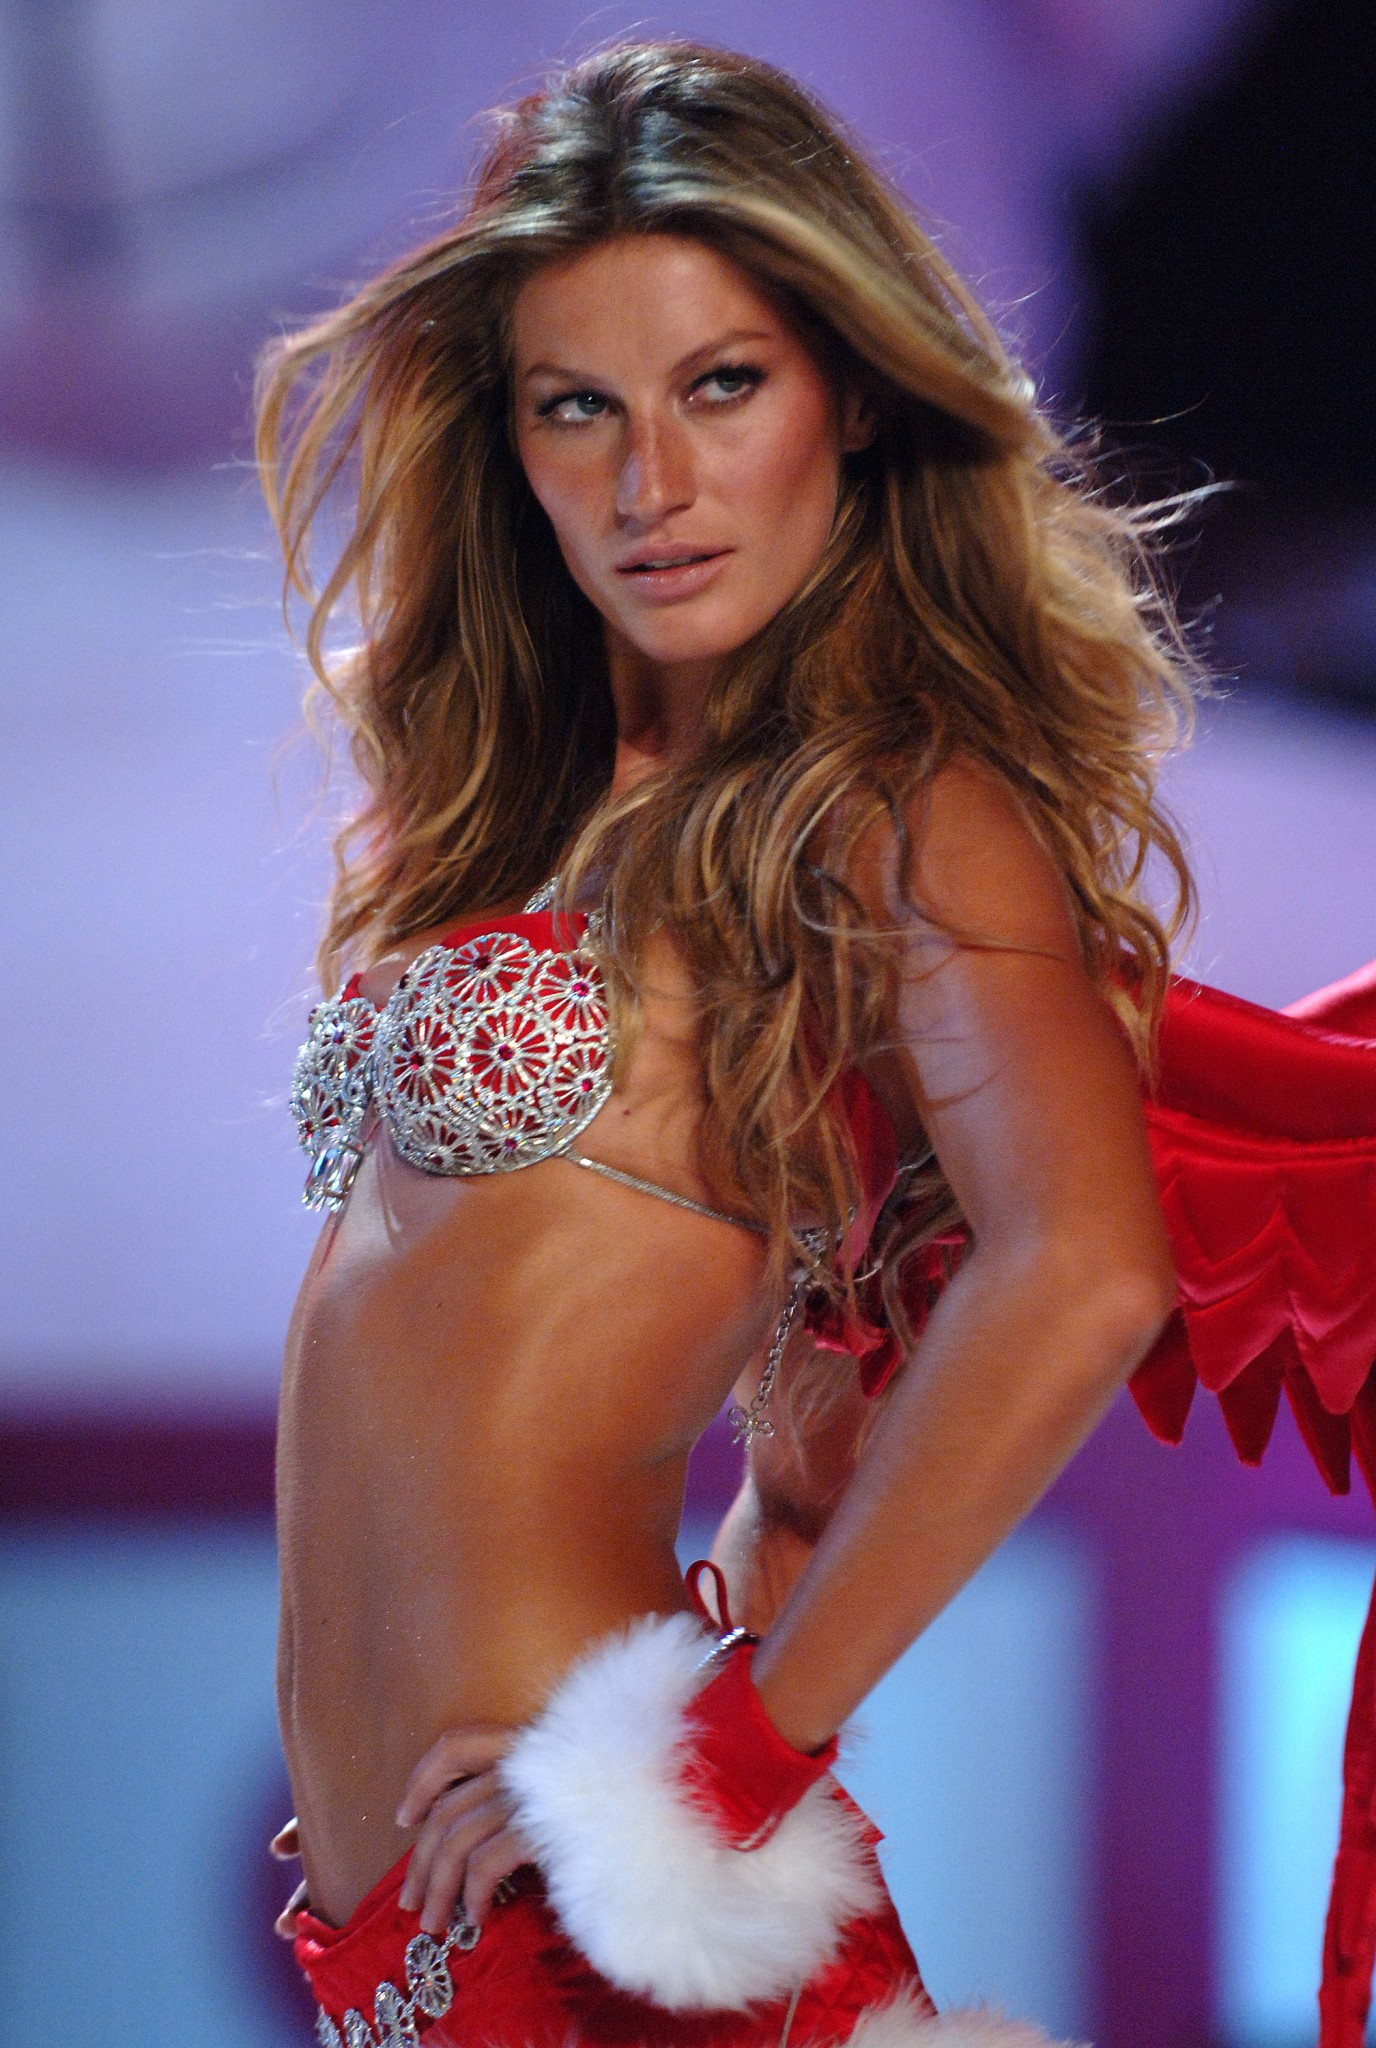 Gisele Bündchen walks the runway in New York